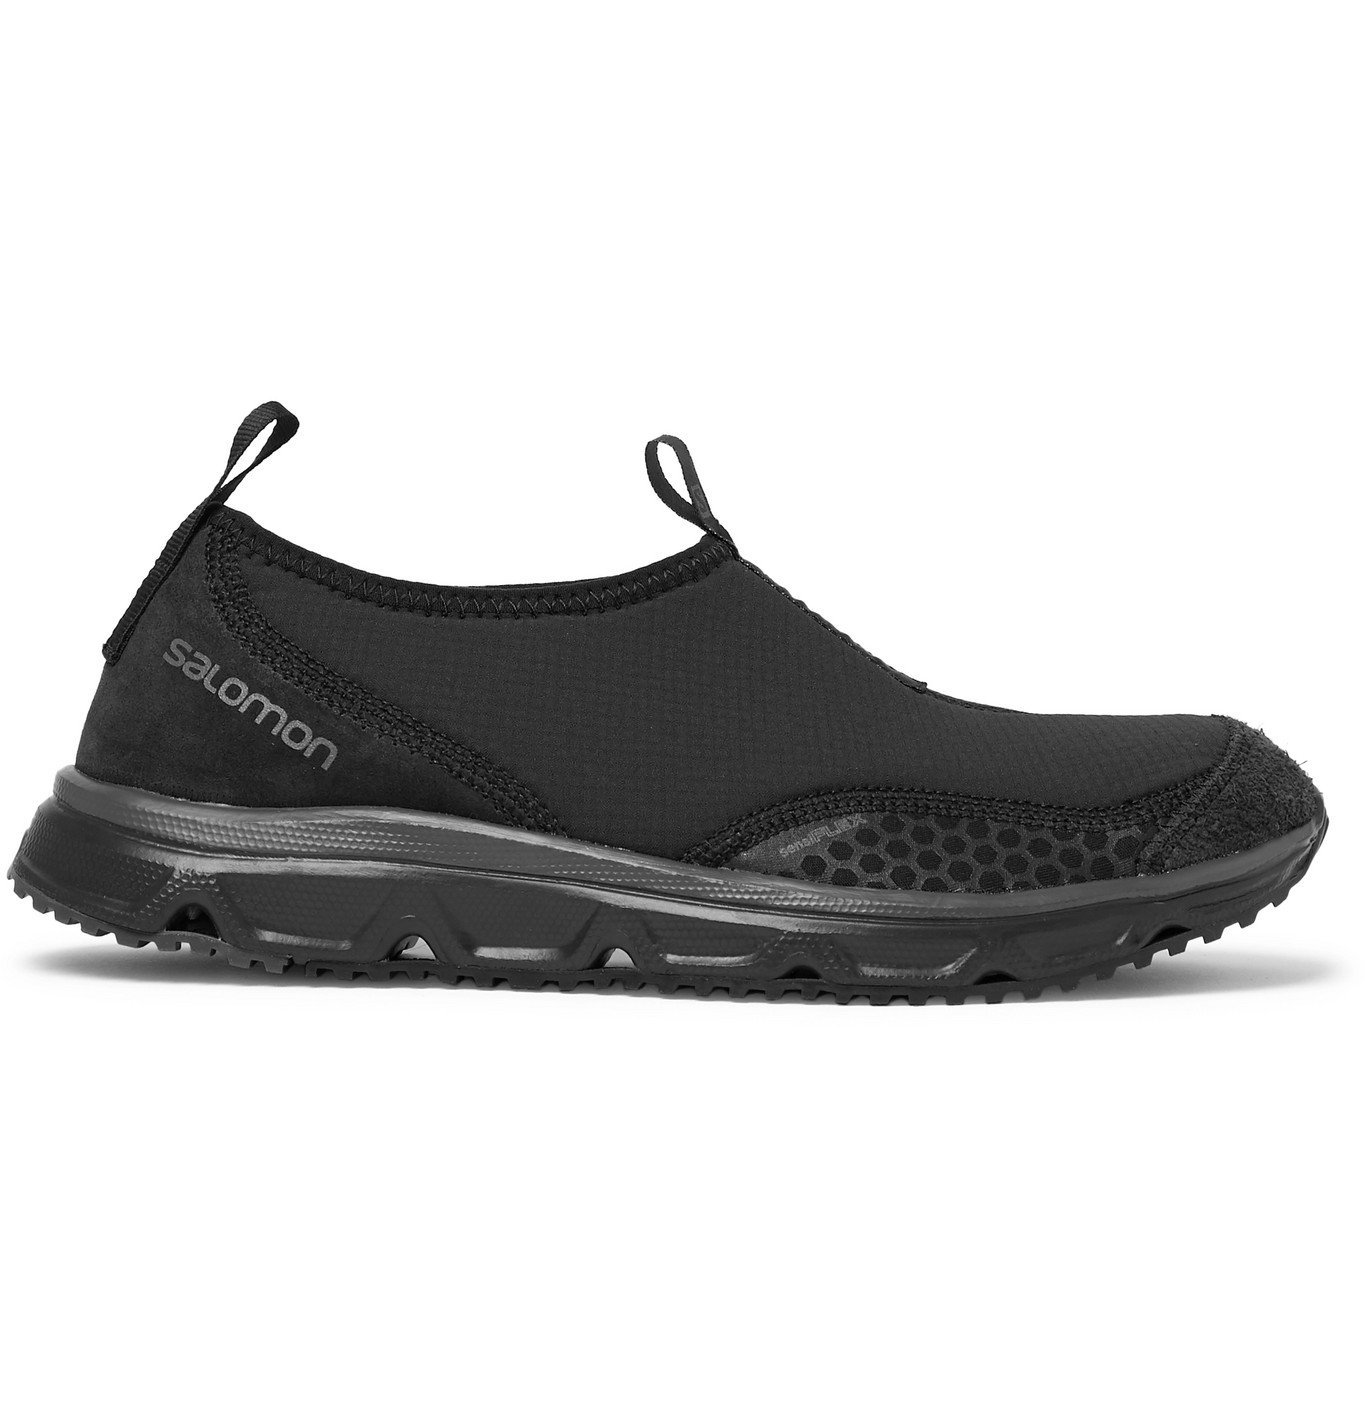 Photo: Salomon - RX Snow Moc Advanced Ripstop, Suede and Rubber Sneakers - Black